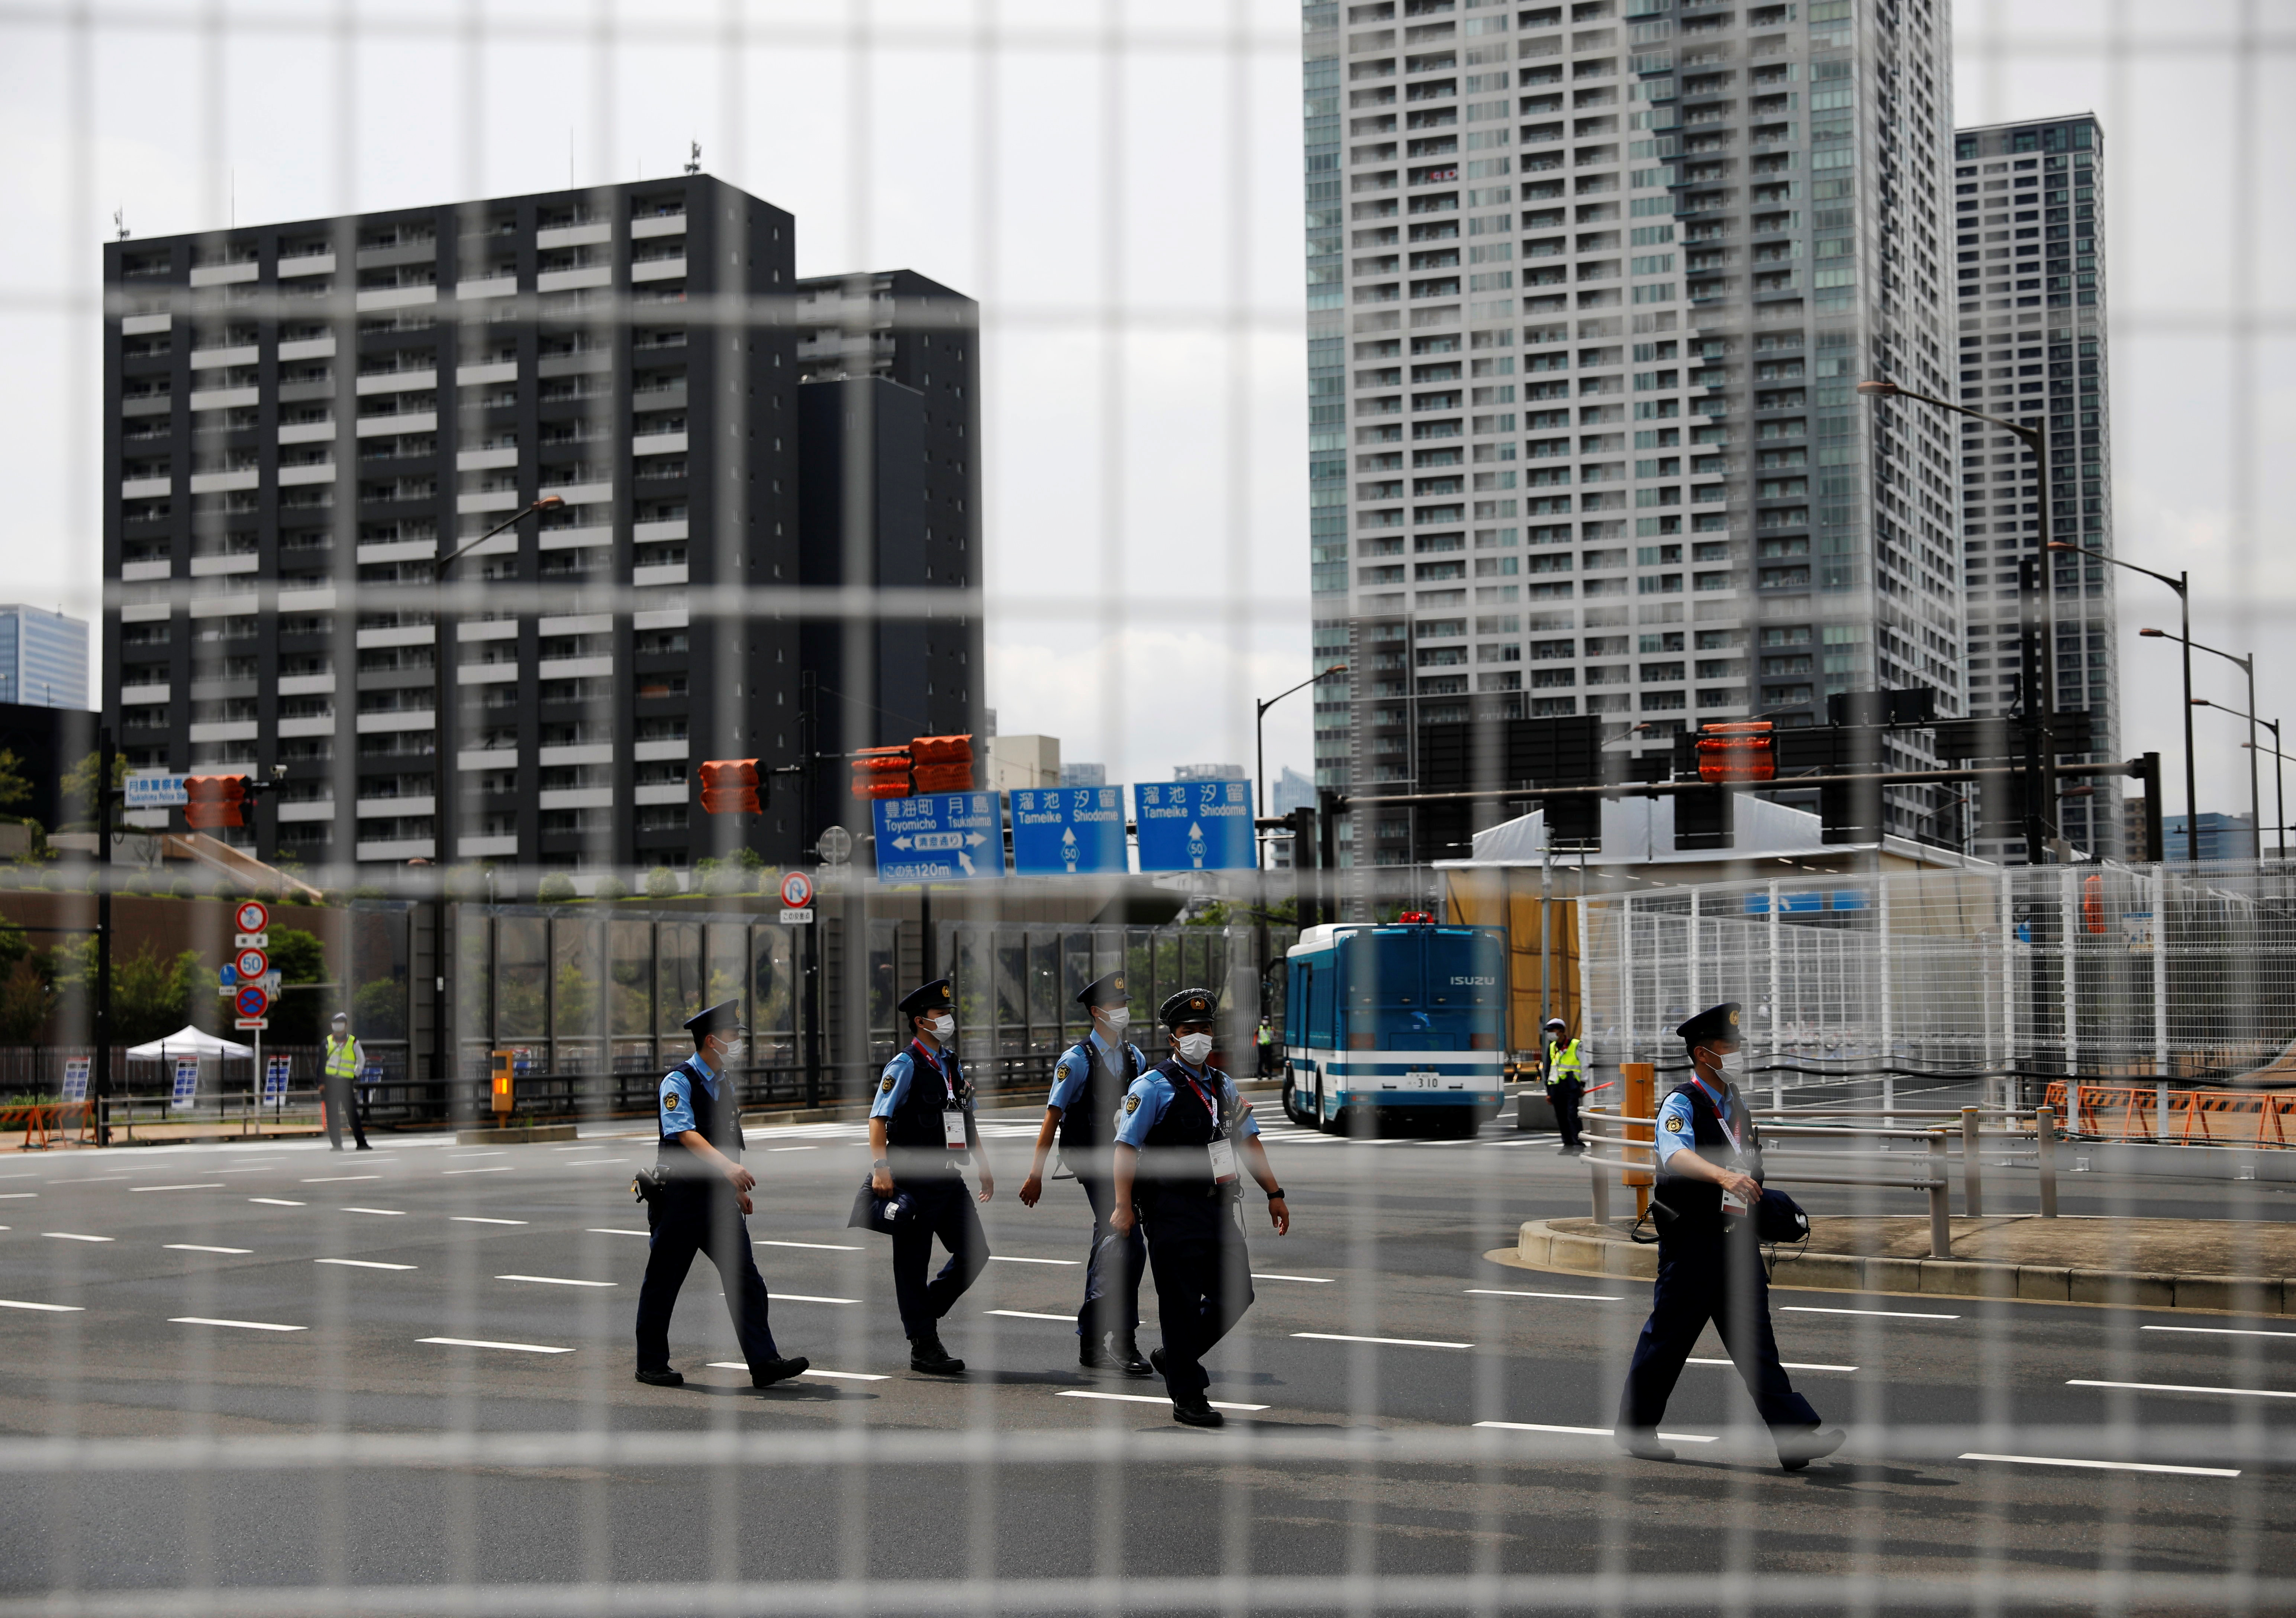 Police officers patrol at the Athletes Village ahead of the Tokyo 2020 Olympic Games that have been postponed to 2021 due to the coronavirus disease (COVID-19) pandemic, in Tokyo, Japan July 13, 2021.  REUTERS/Issei Kato